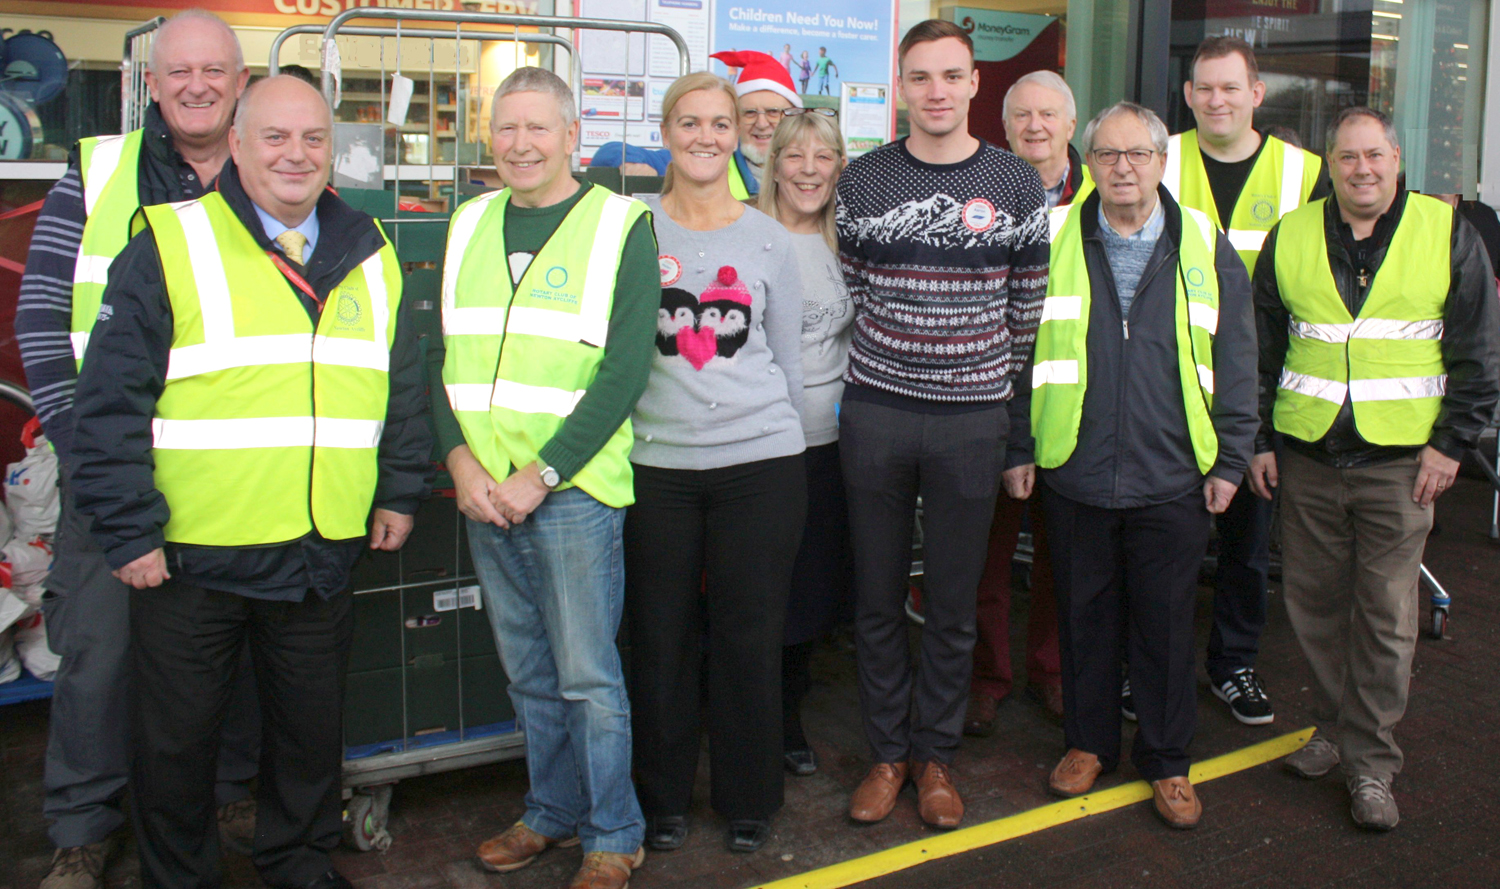 Rotary Club Christmas Appeal Helps Town's Needy Families